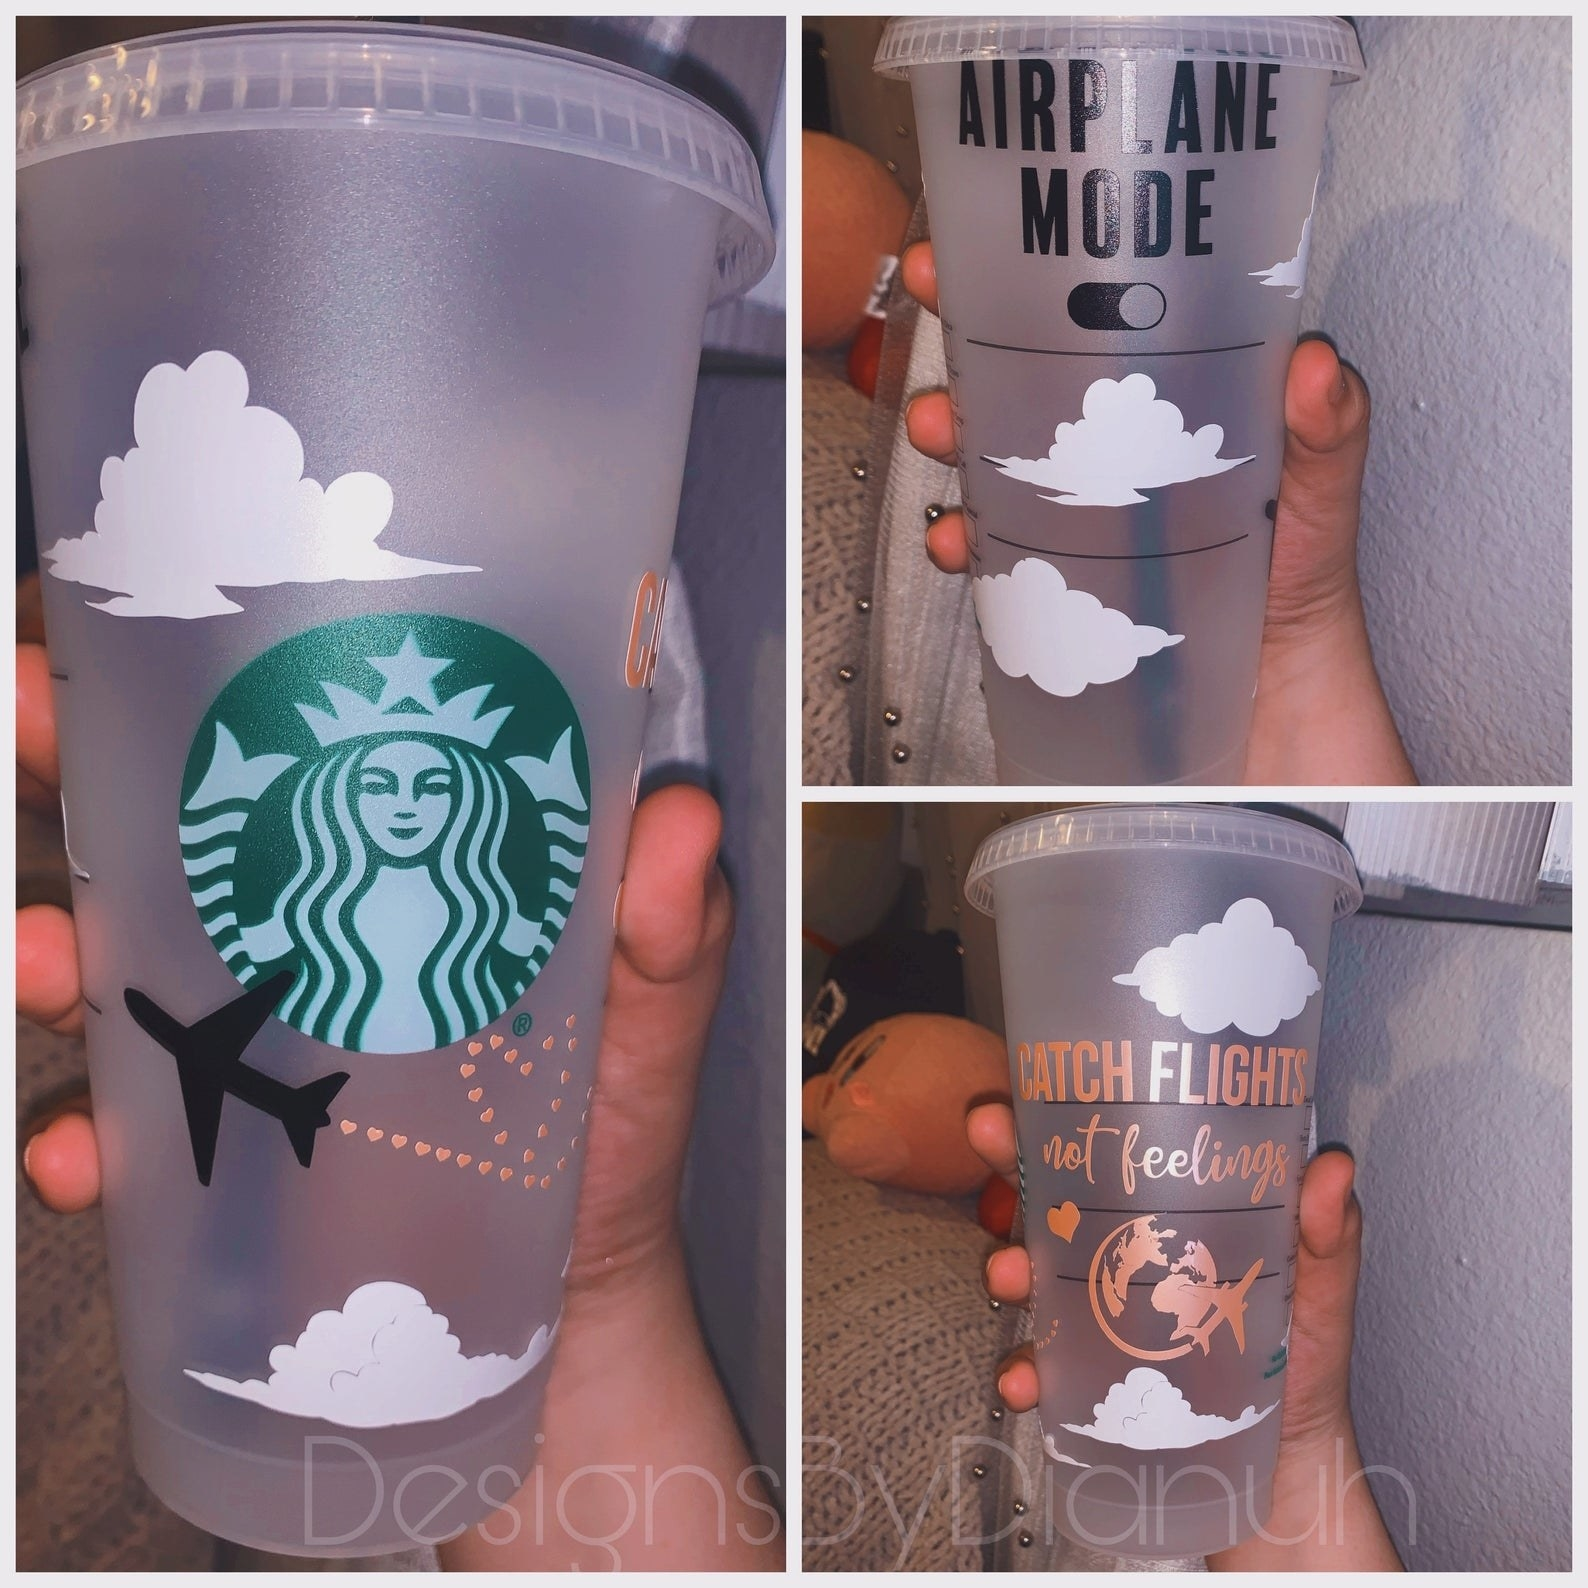 A starbucks cup with travel illustrations